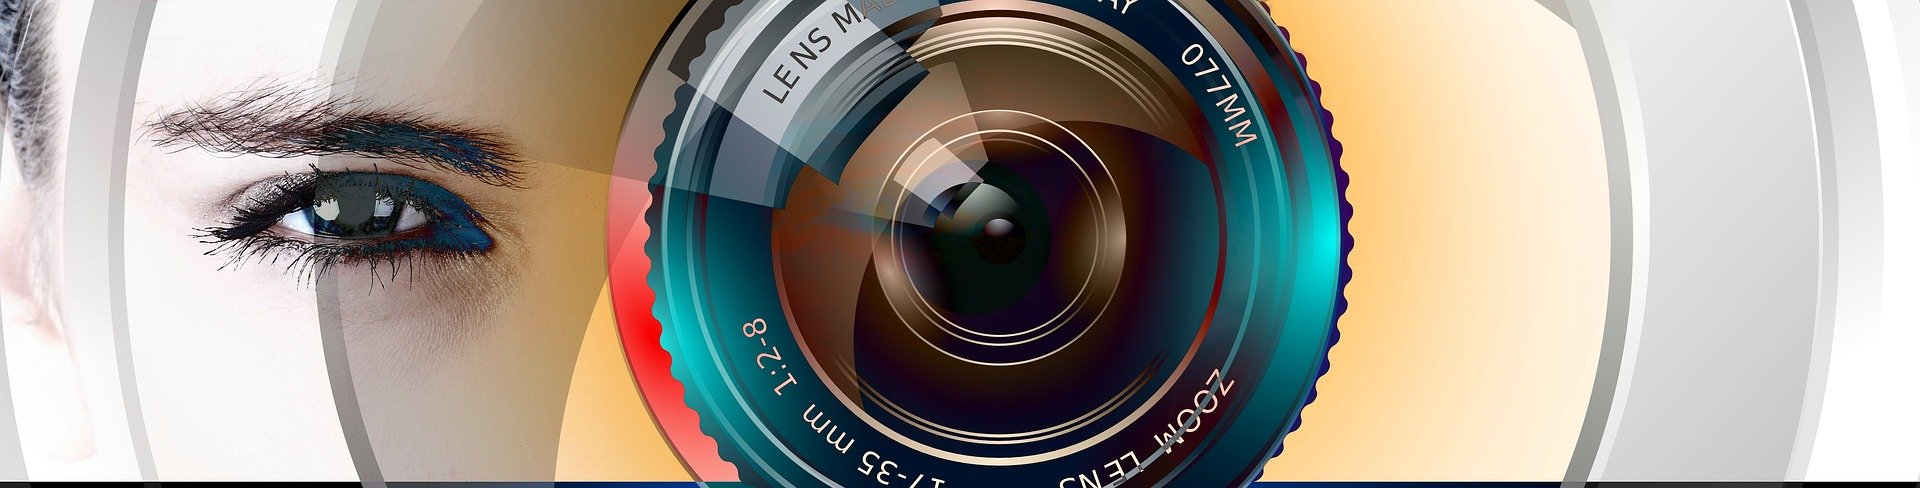 Multimedia-Kurs-Photographie